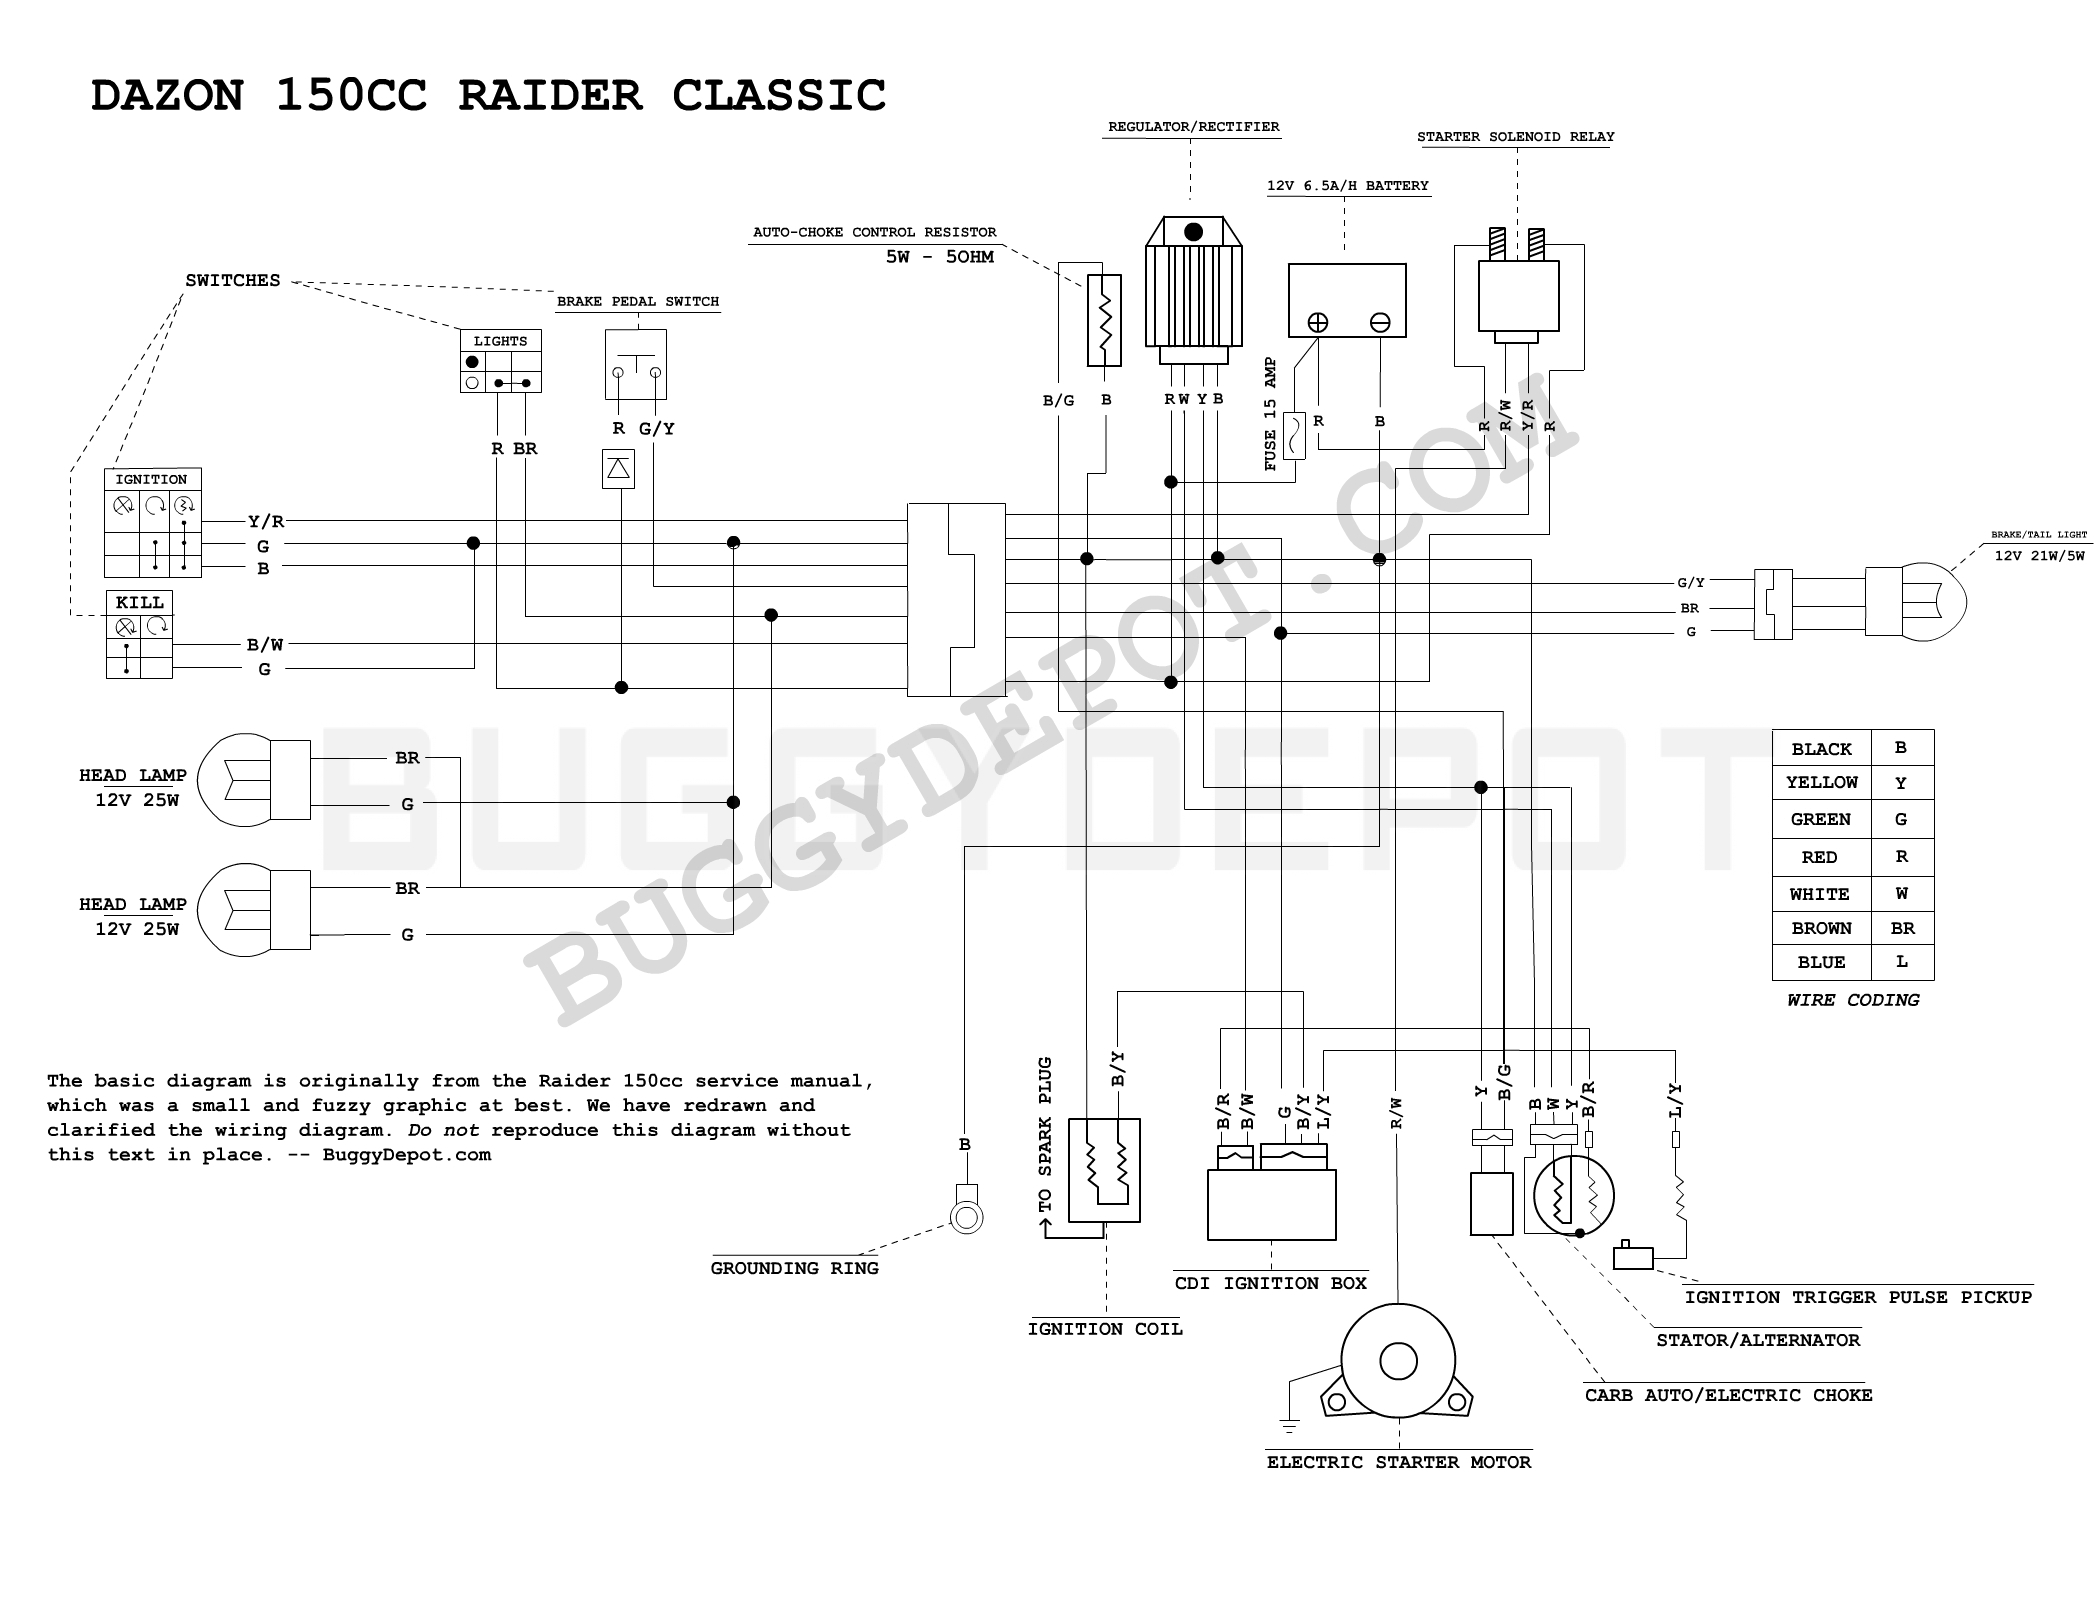 article_33_1278205207 crossfire 150r wiring diagram buggy depot technical center tomberlin crossfire 150 wiring diagram at soozxer.org